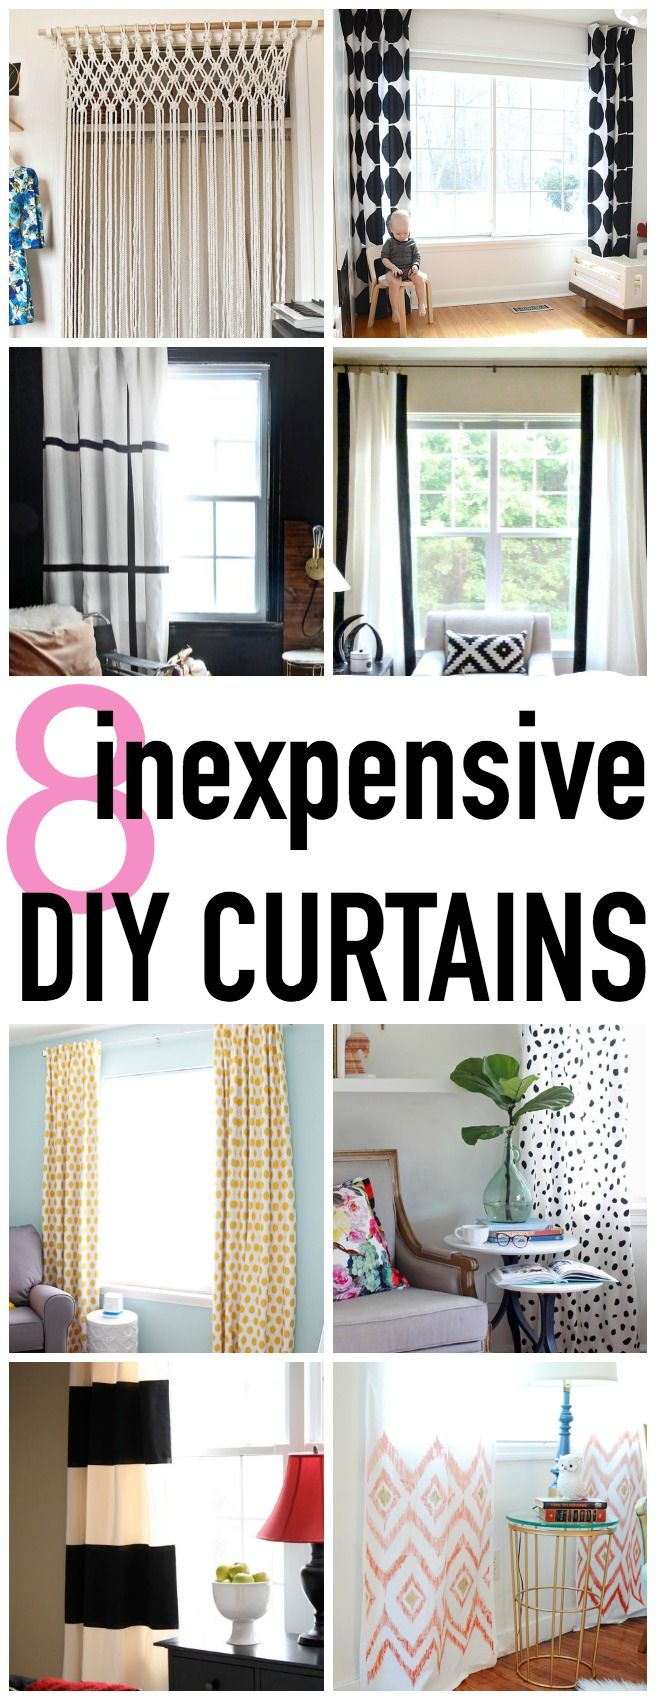 Decor Hacks 8 Super Stylish And Easy Diy Curtain